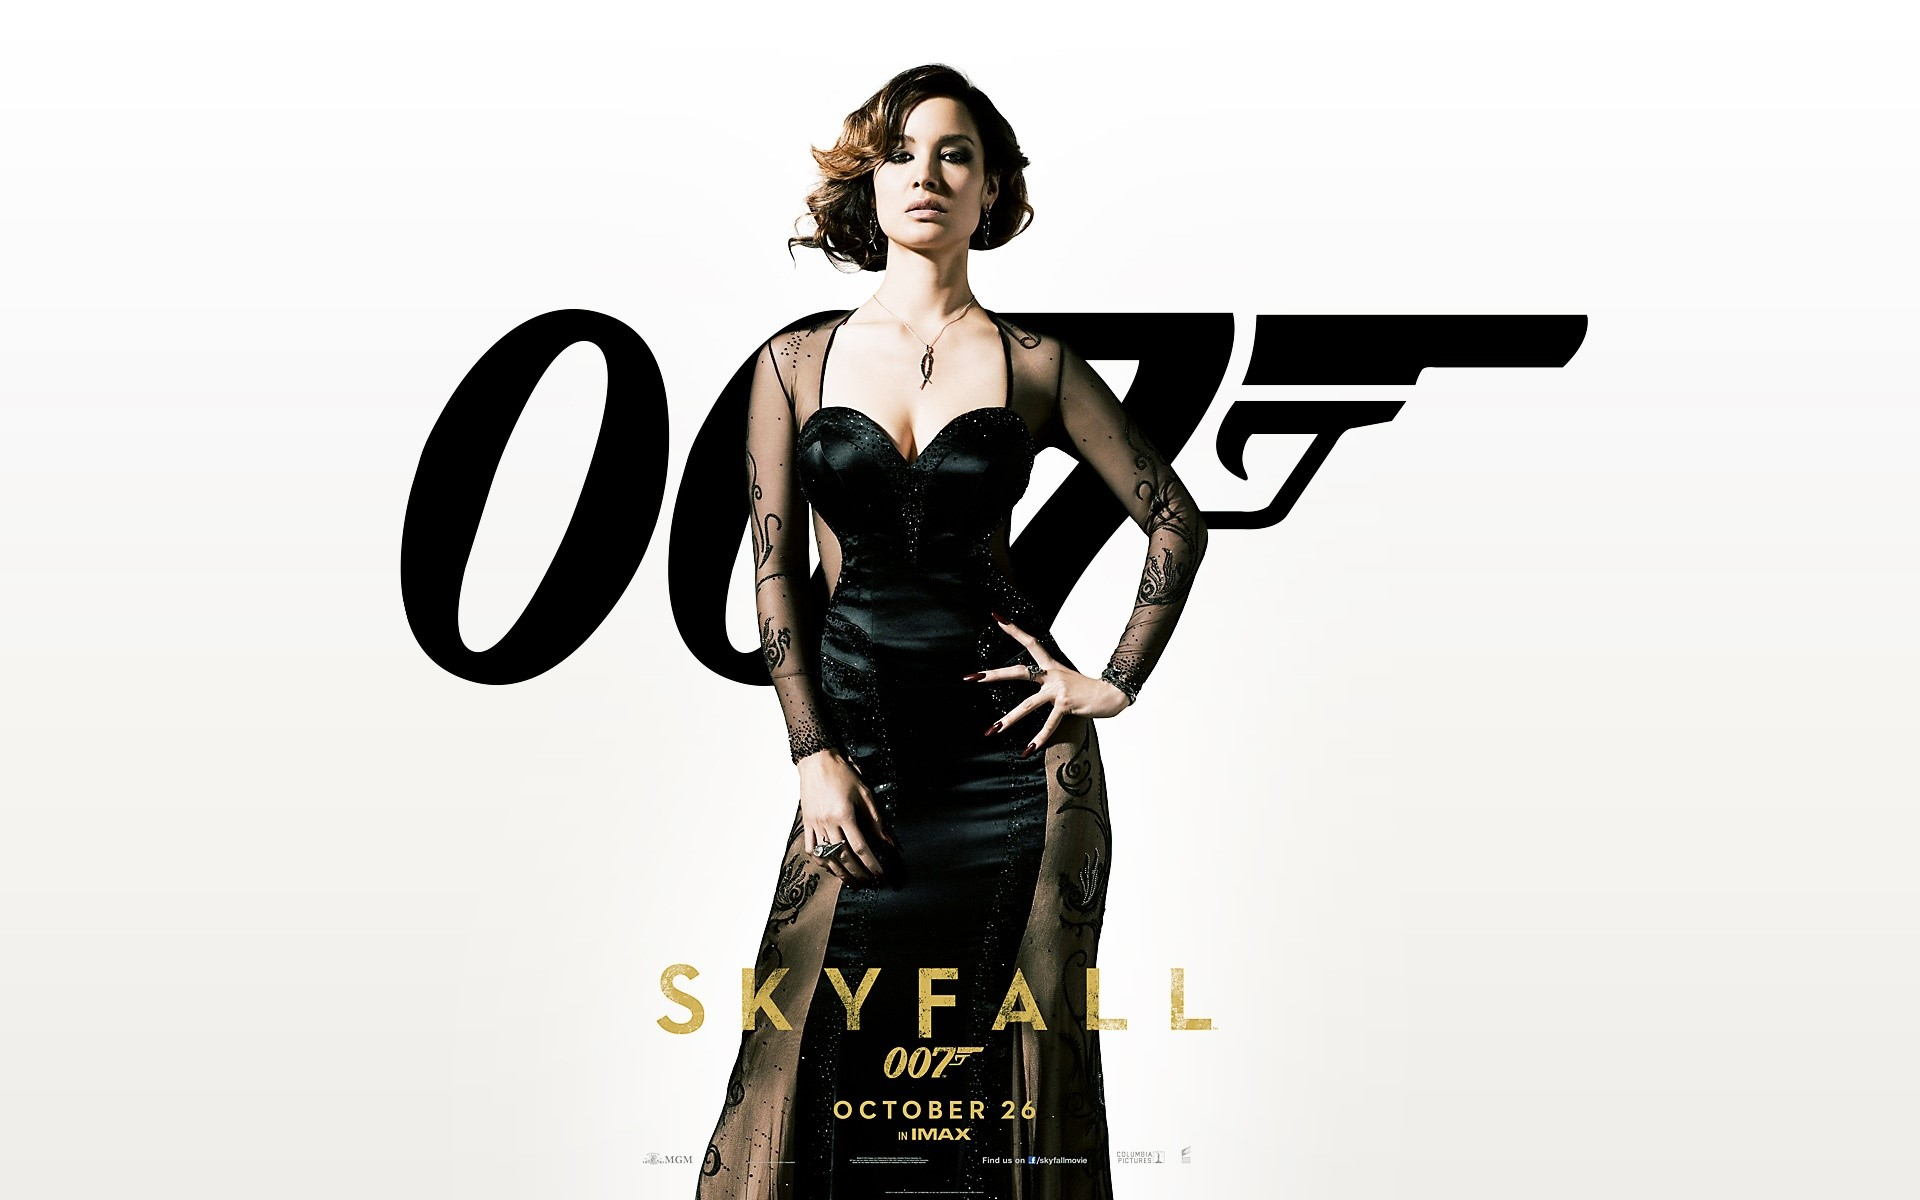 Wallpaper Berenice Marlohe in Skyfall